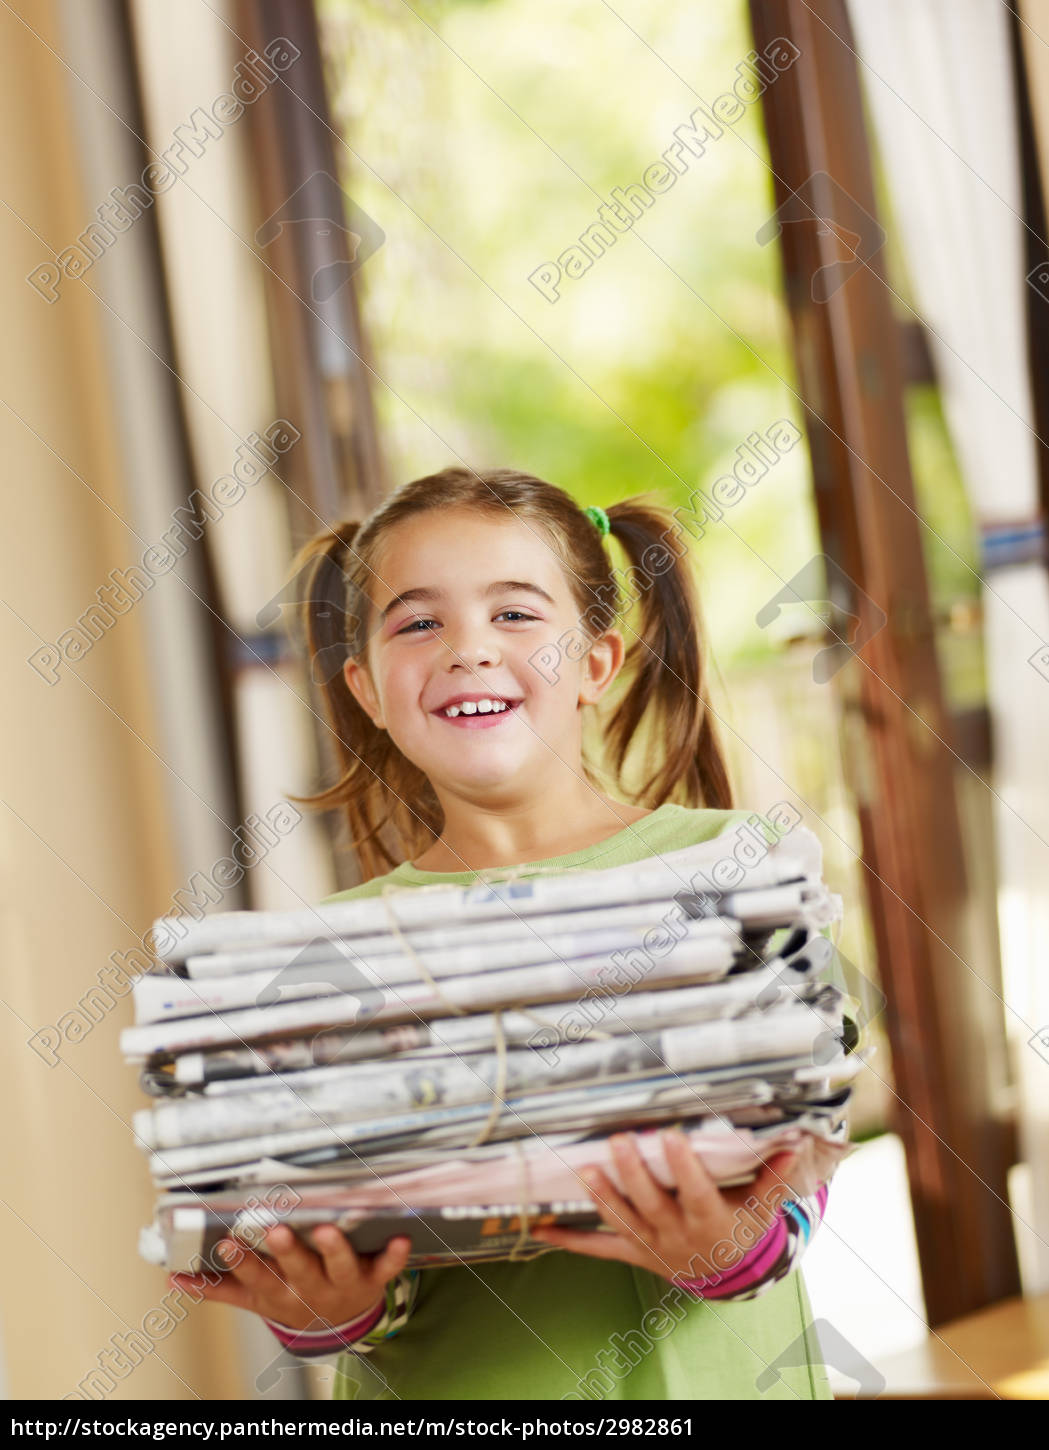 girl, recycling, newspapers - 2982861